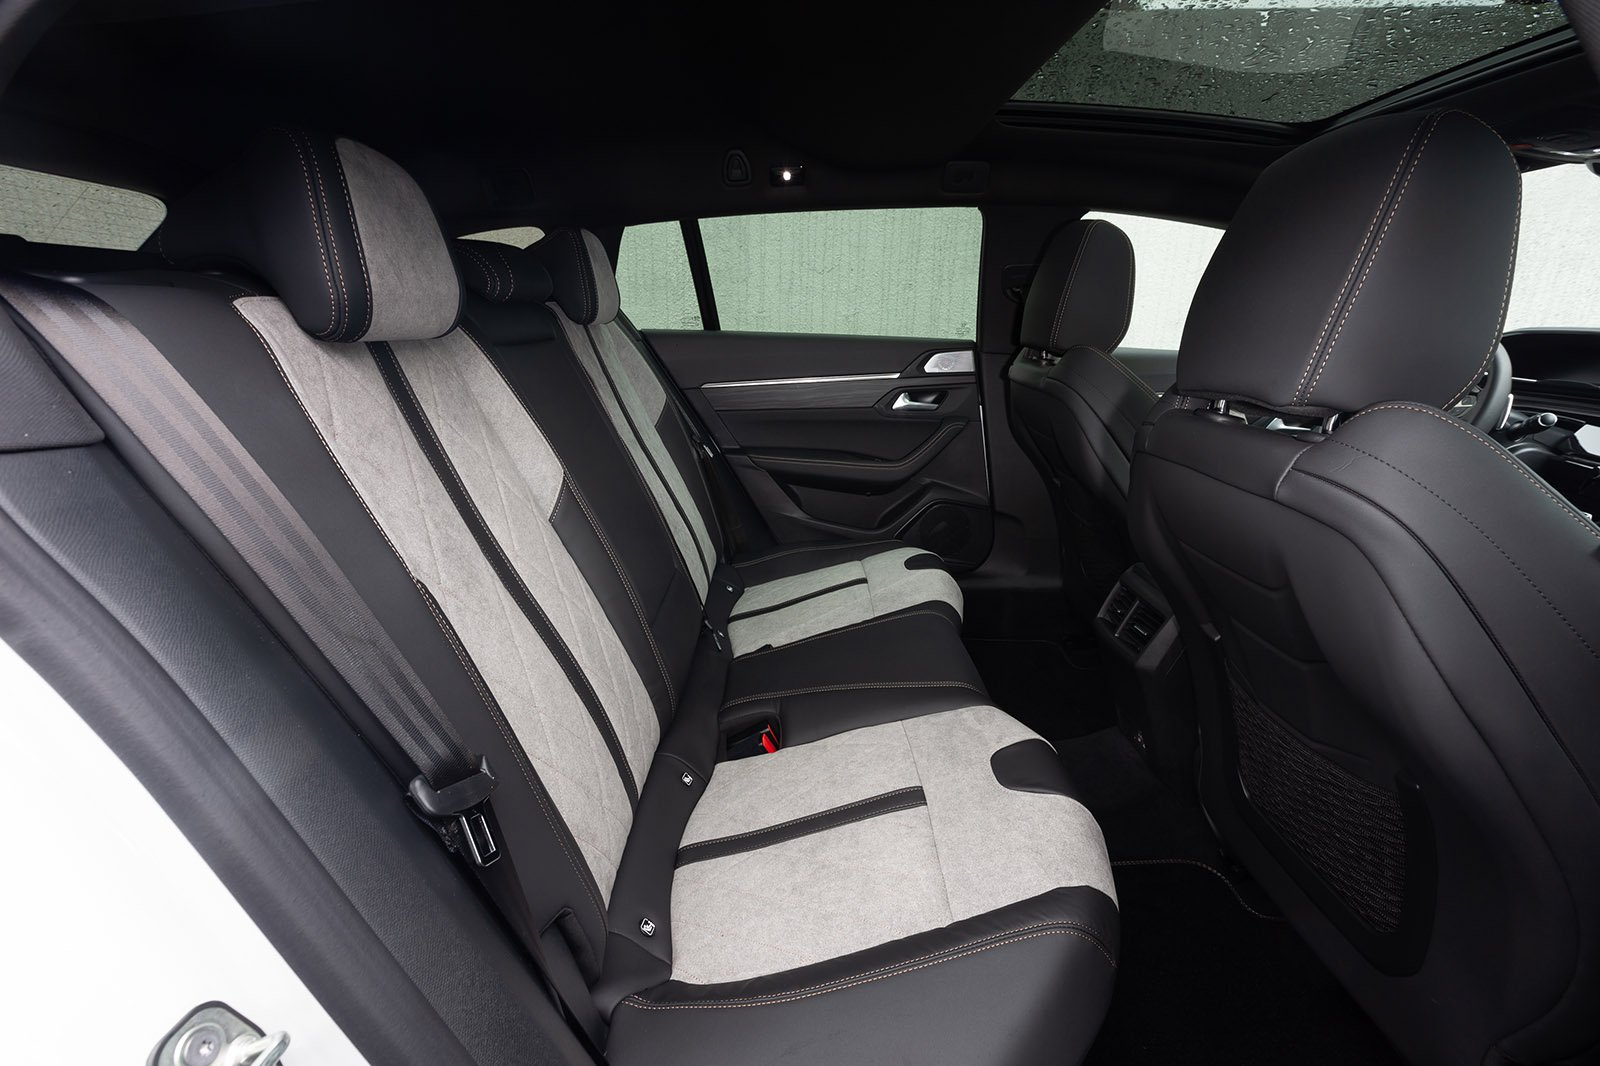 Peugeot 508 SW 2020 rear seats LHD